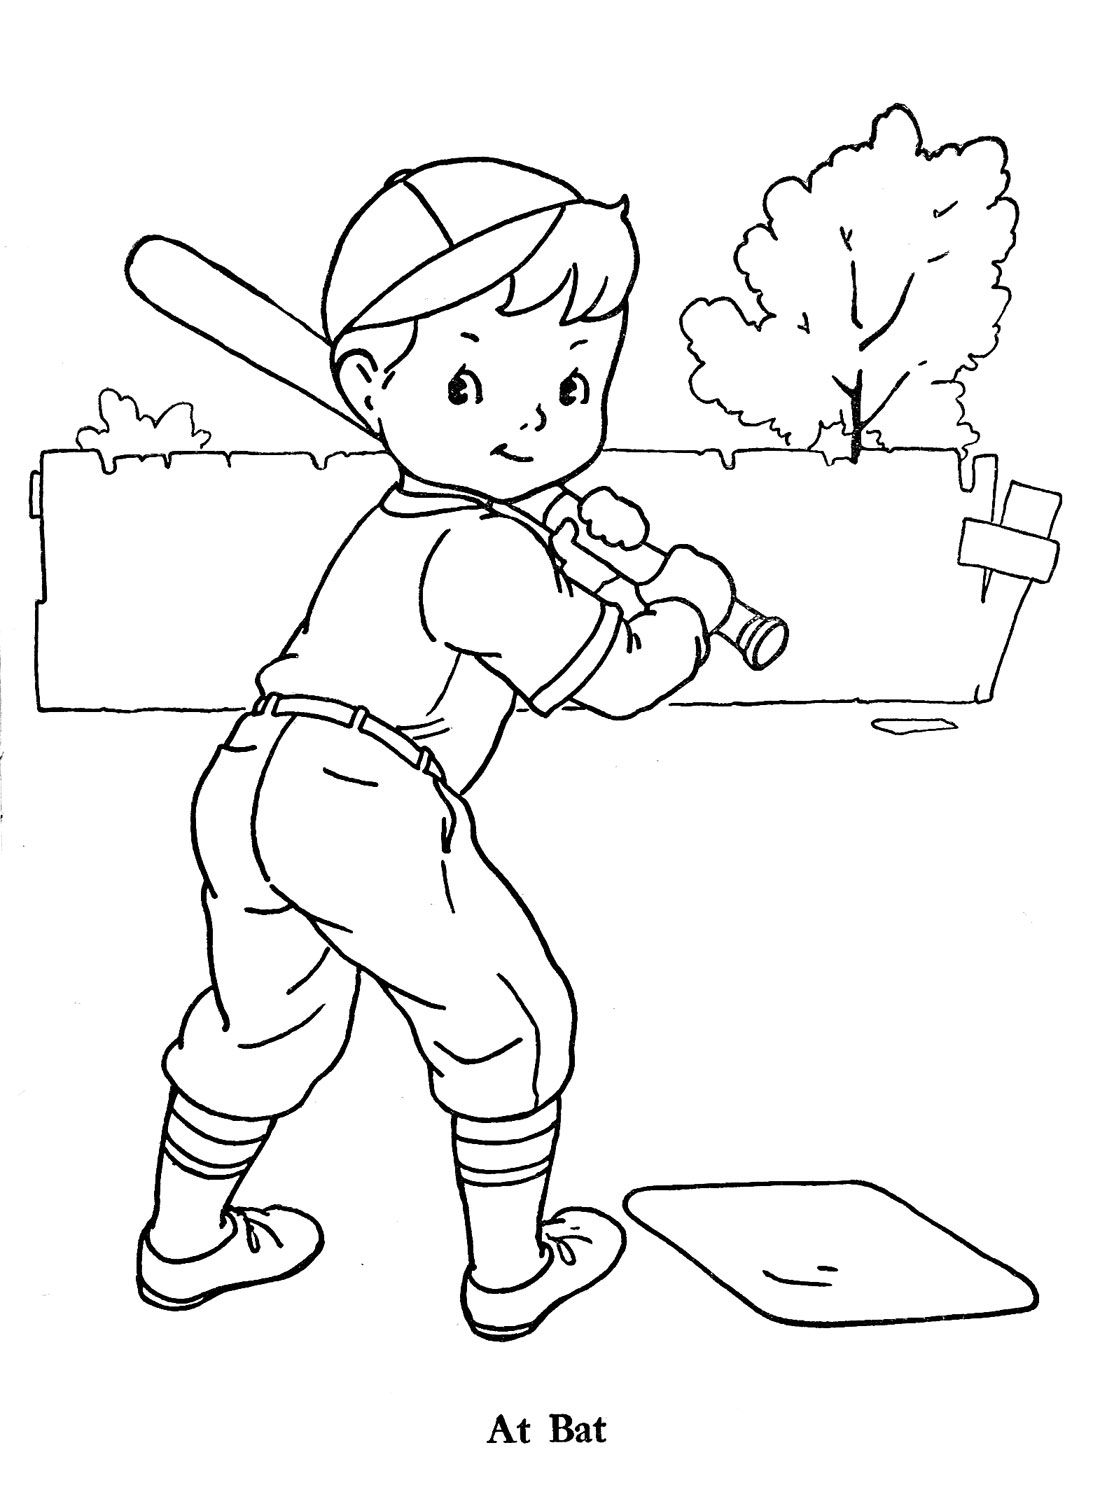 Favorite Paint Book — Little Boys | Baseball coloring ...